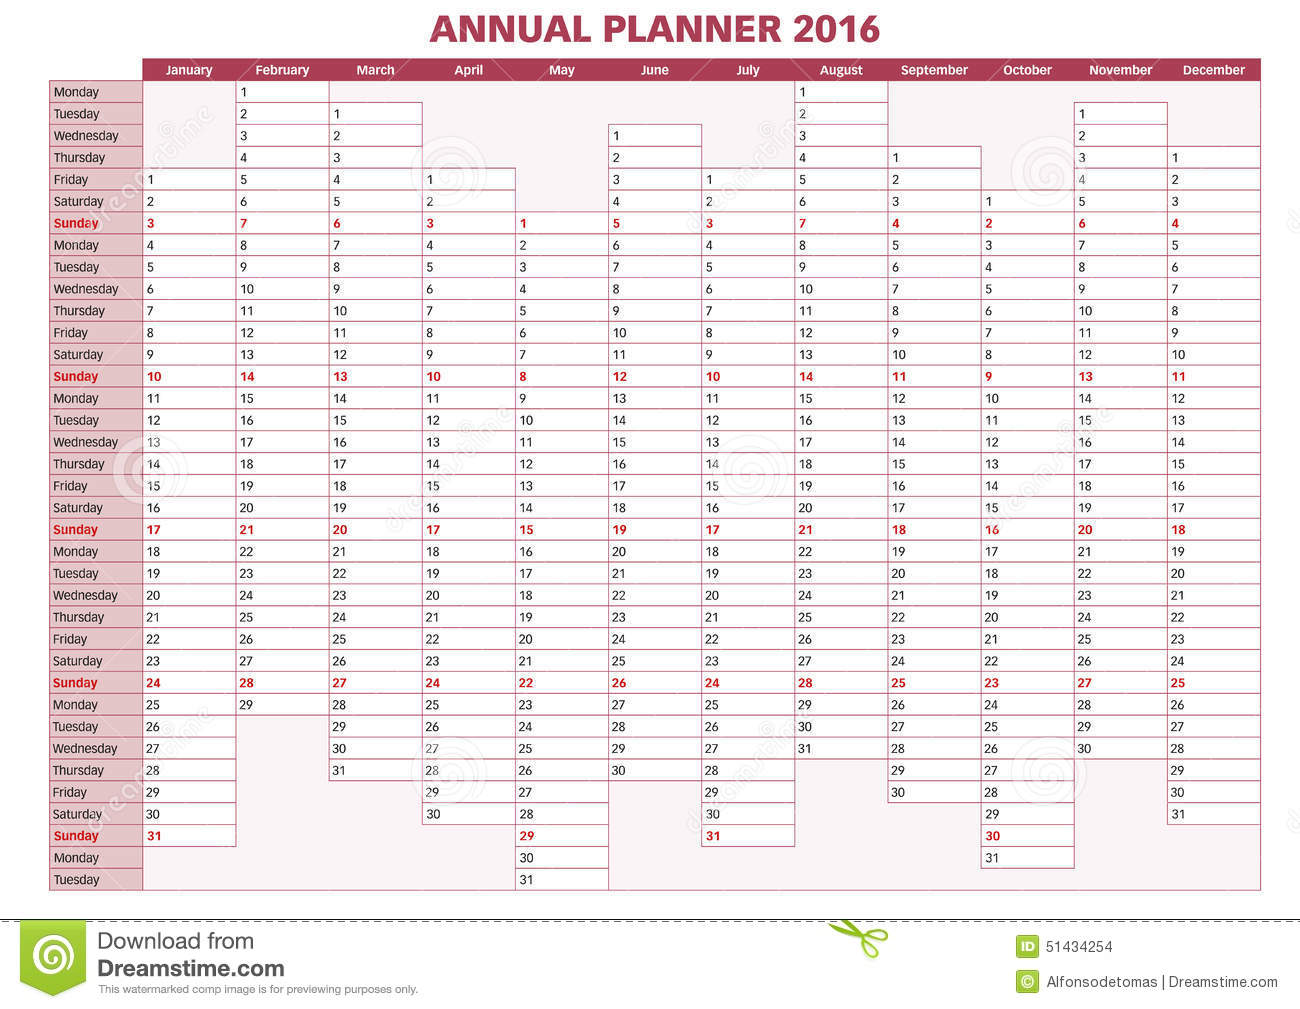 Annual Planner English 2016 Stock Vector Image 51434254